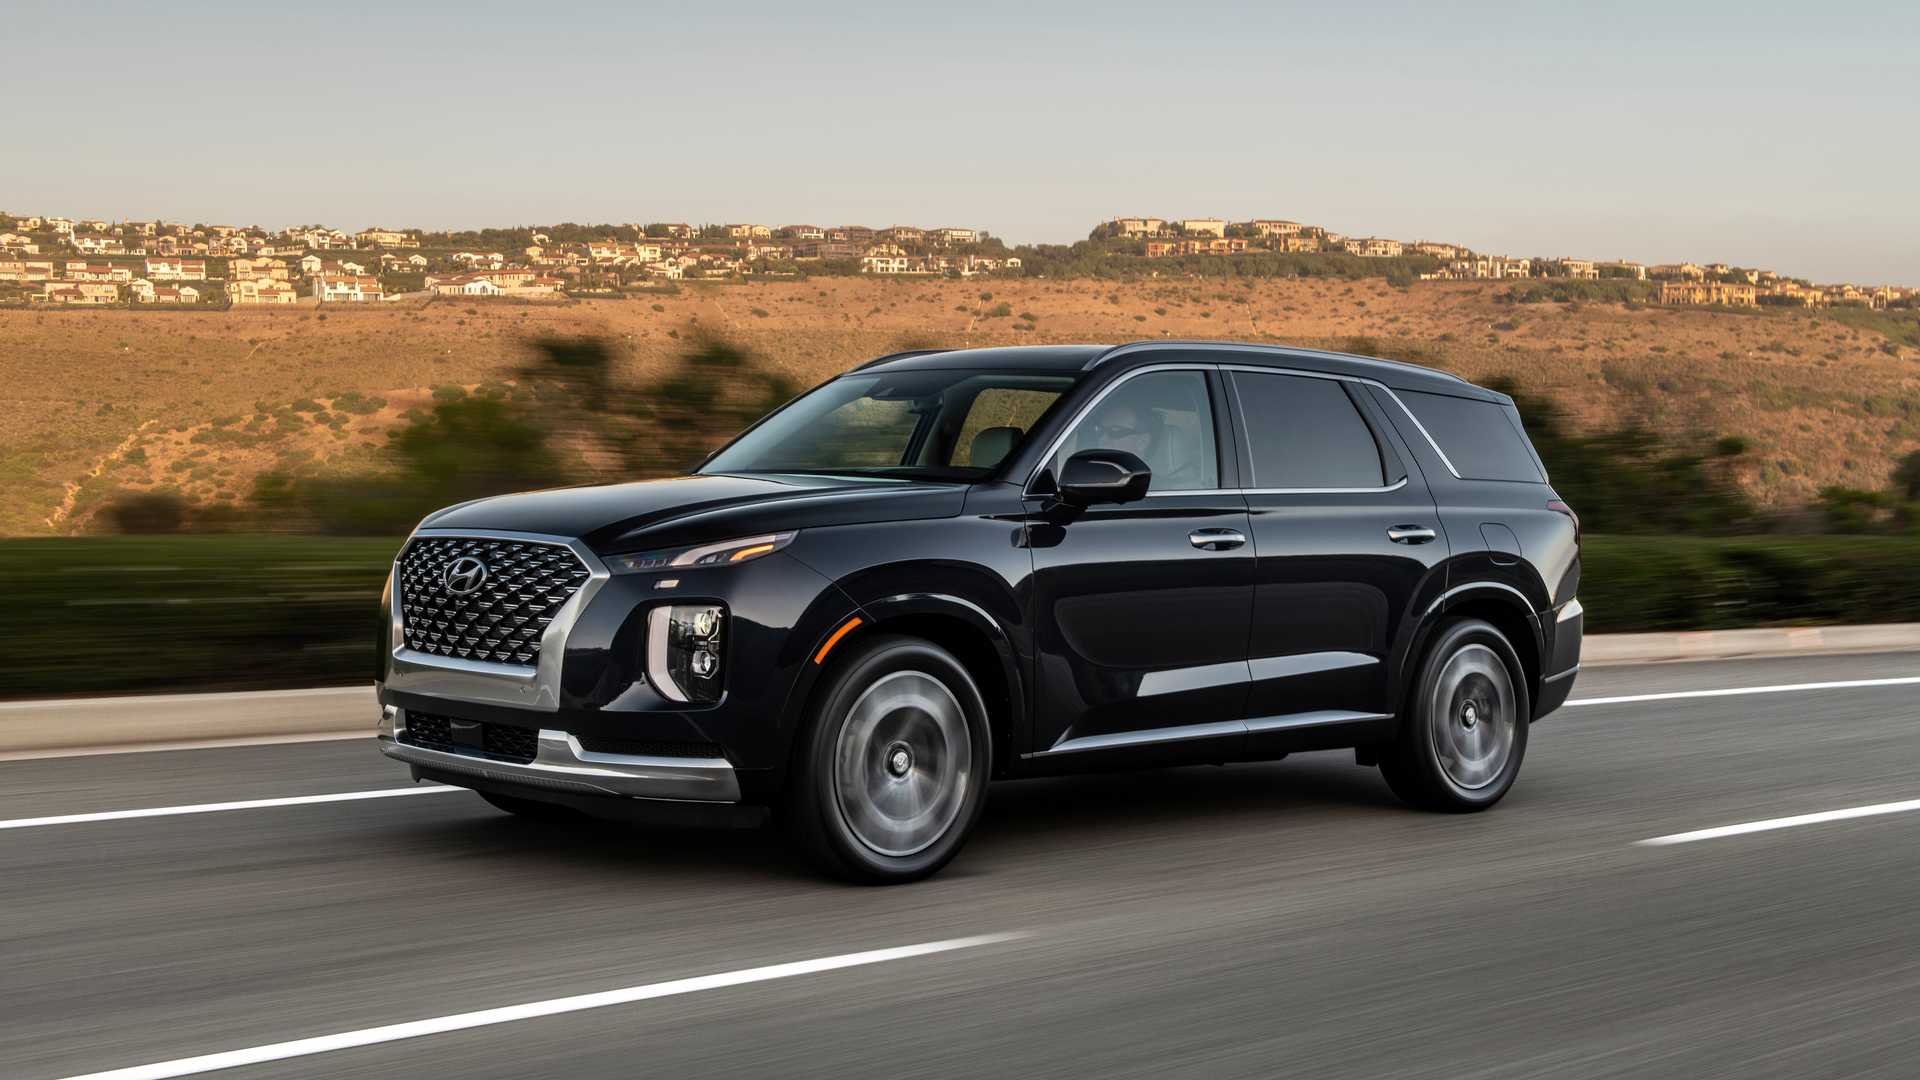 After announcing the Calligraphy Edition of its Palisade SUV in May, Hyundai has finally supplied details about it along with some pics.